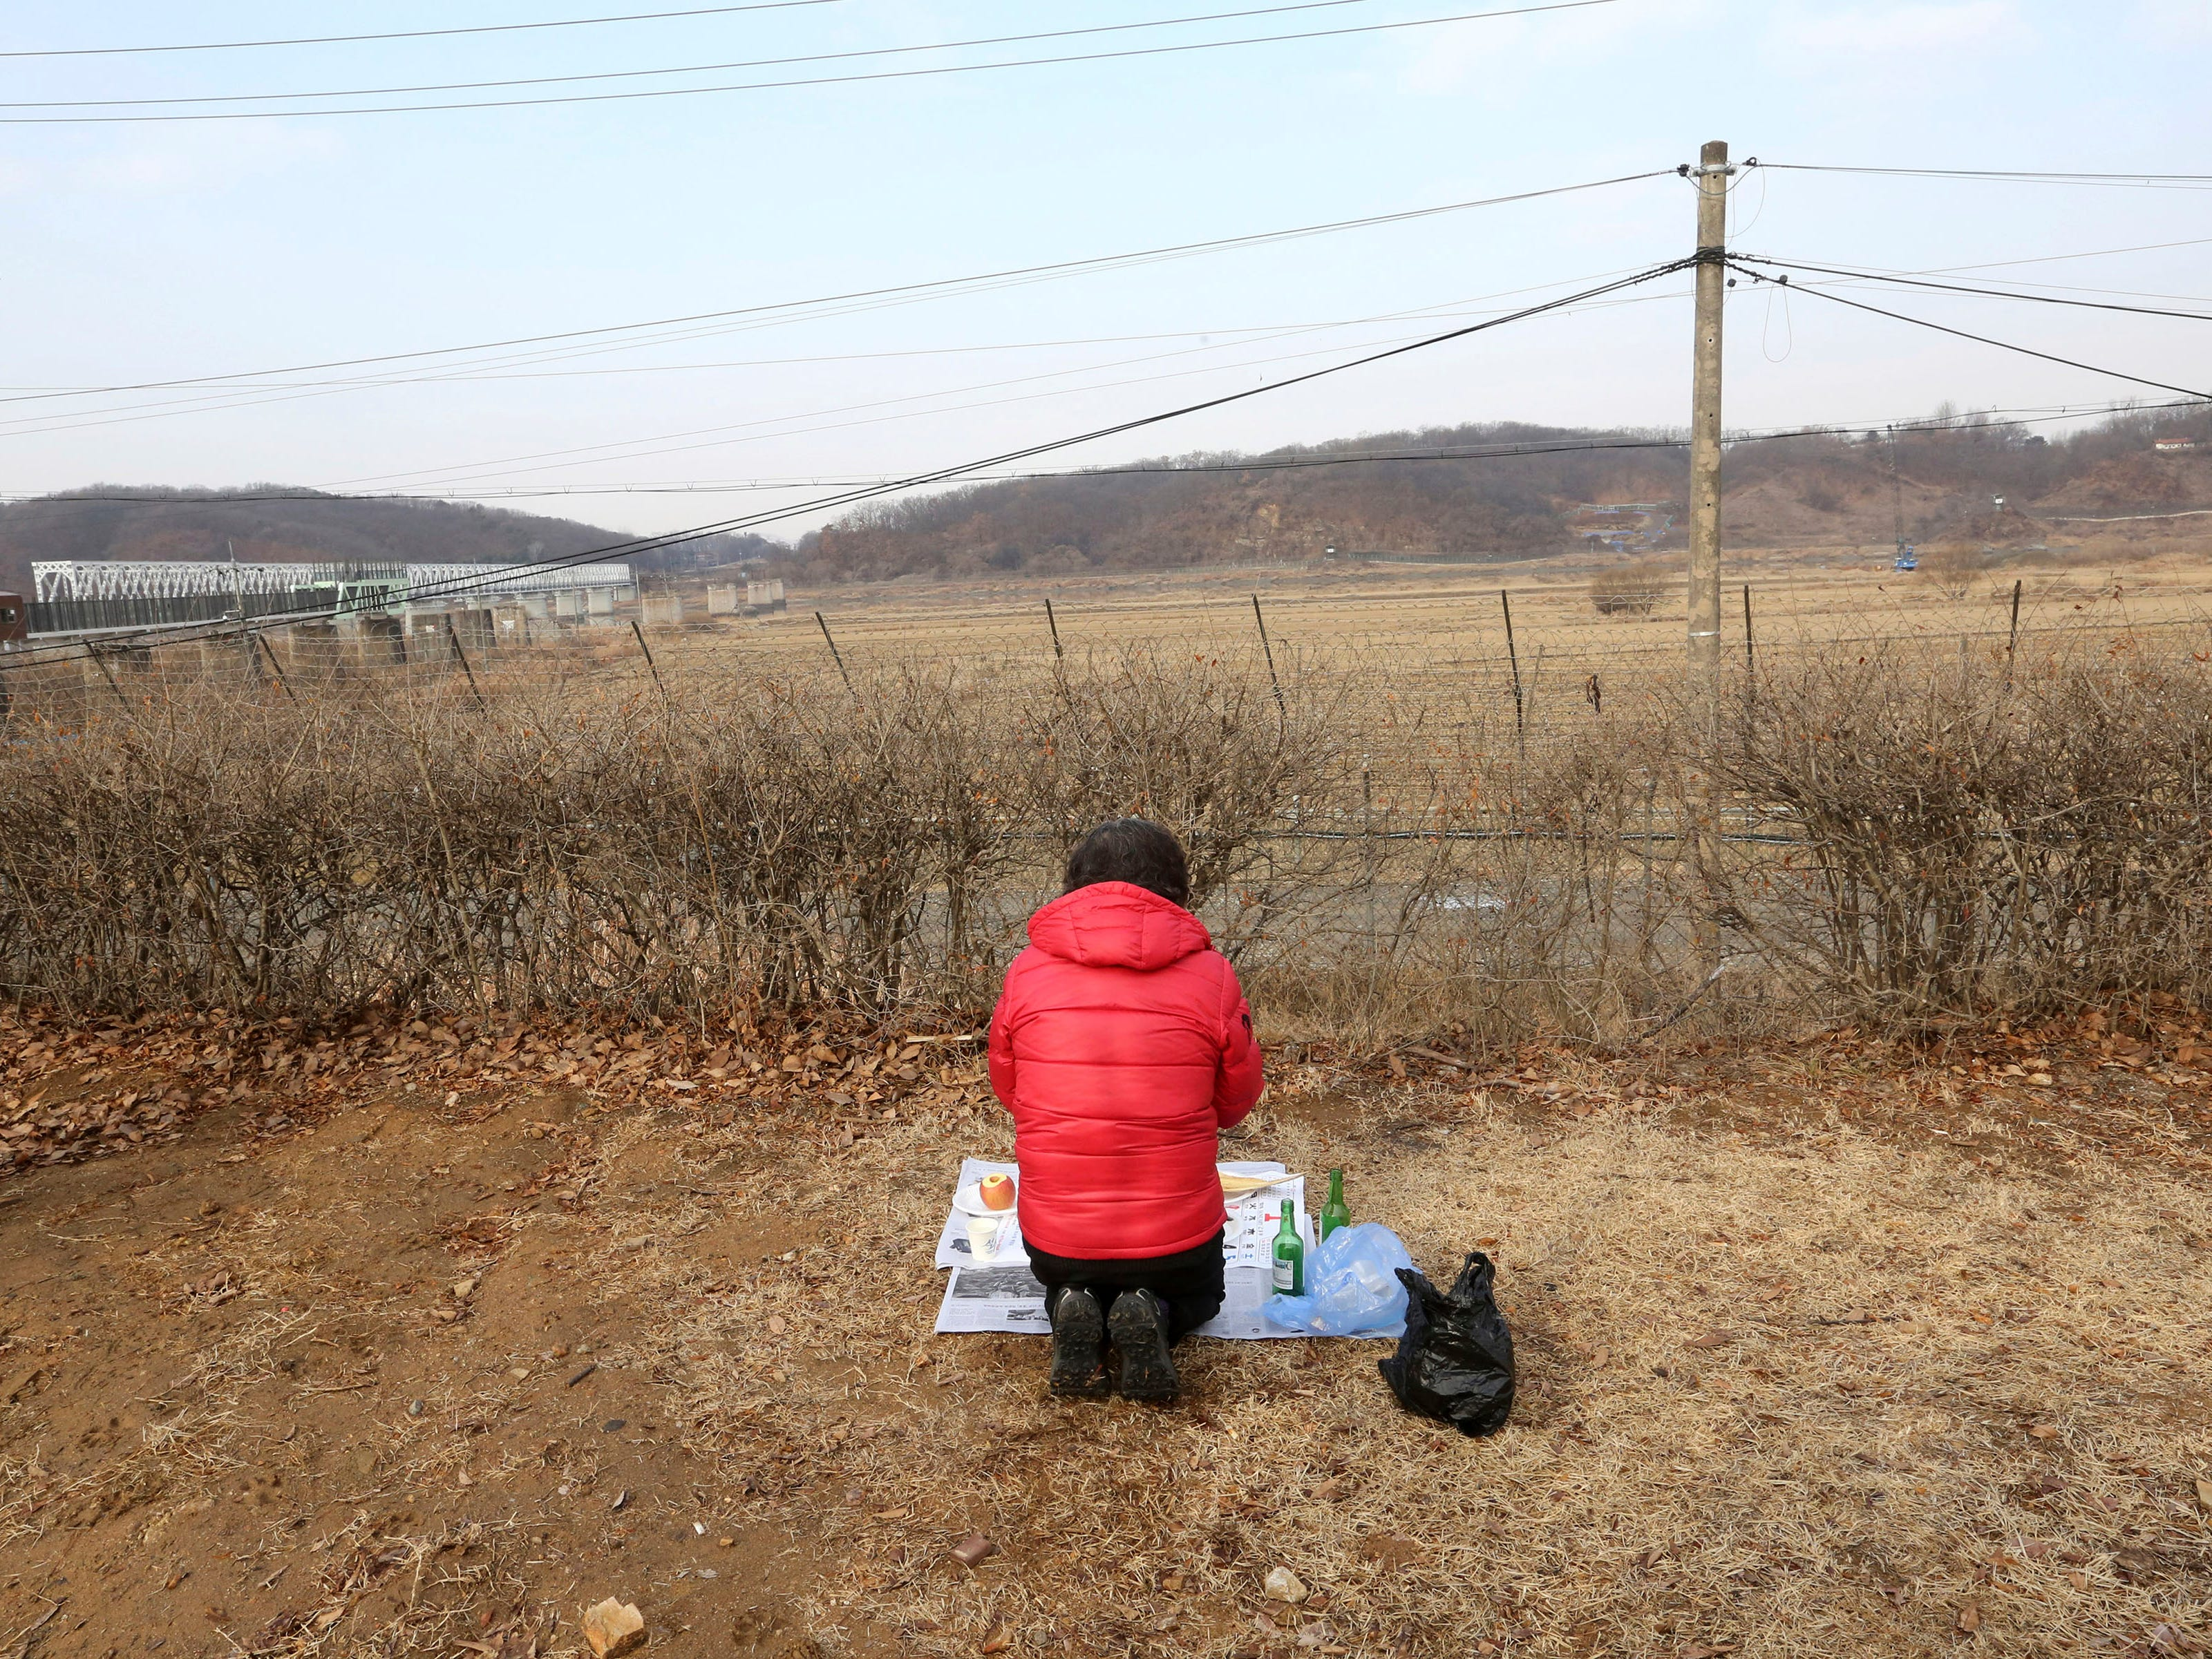 A North Korean refugee woman prays for her ancestors in North Korea as she visits the border to celebrate the Lunar New Year at the Imjingak Pavilion, near the demilitarized zone of Panmunjom, in Paju, South Korea, Tuesday, Feb. 5, 2019. (AP Photo/Ahn Young-joon) ORG XMIT: SEL104